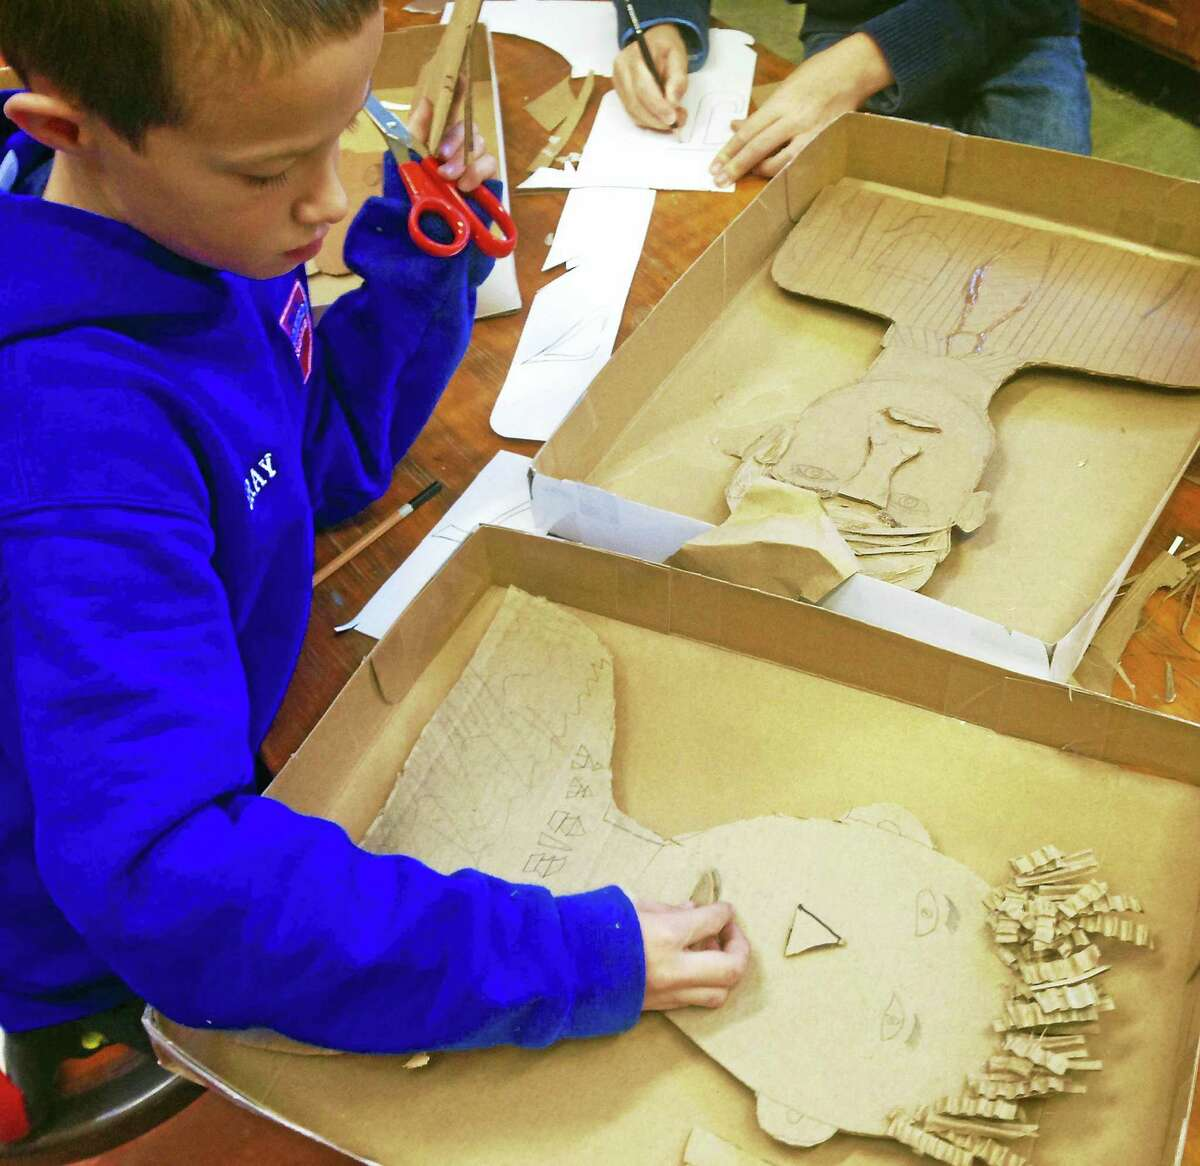 Contributed photosStudents use discarded cardboard to create art for their show at the Oliver Wolcott Library Gallery.